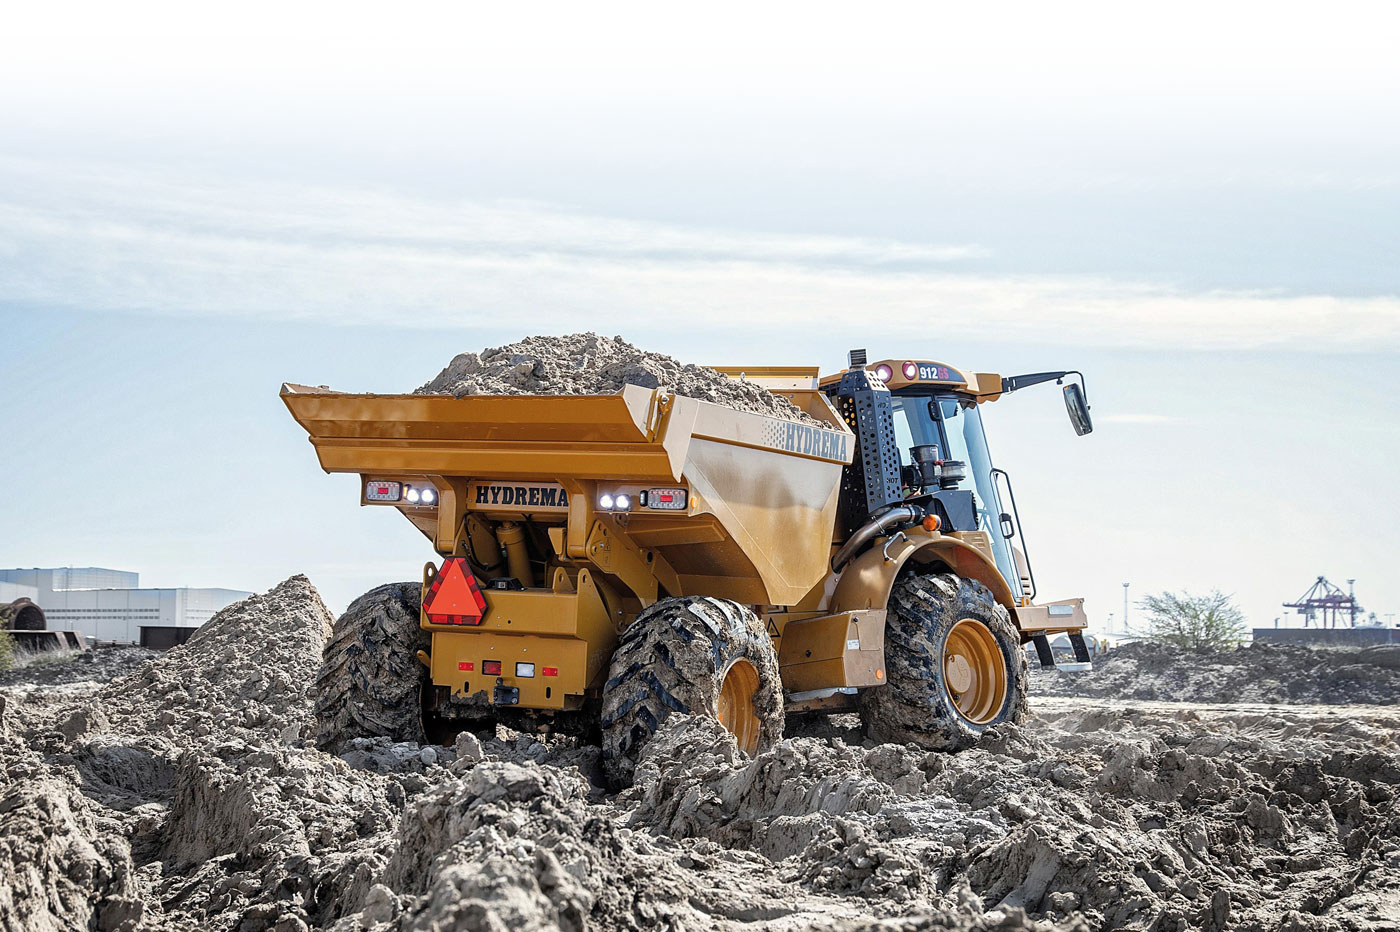 Hydrema 912GS compact dump truck moving material in muddy area